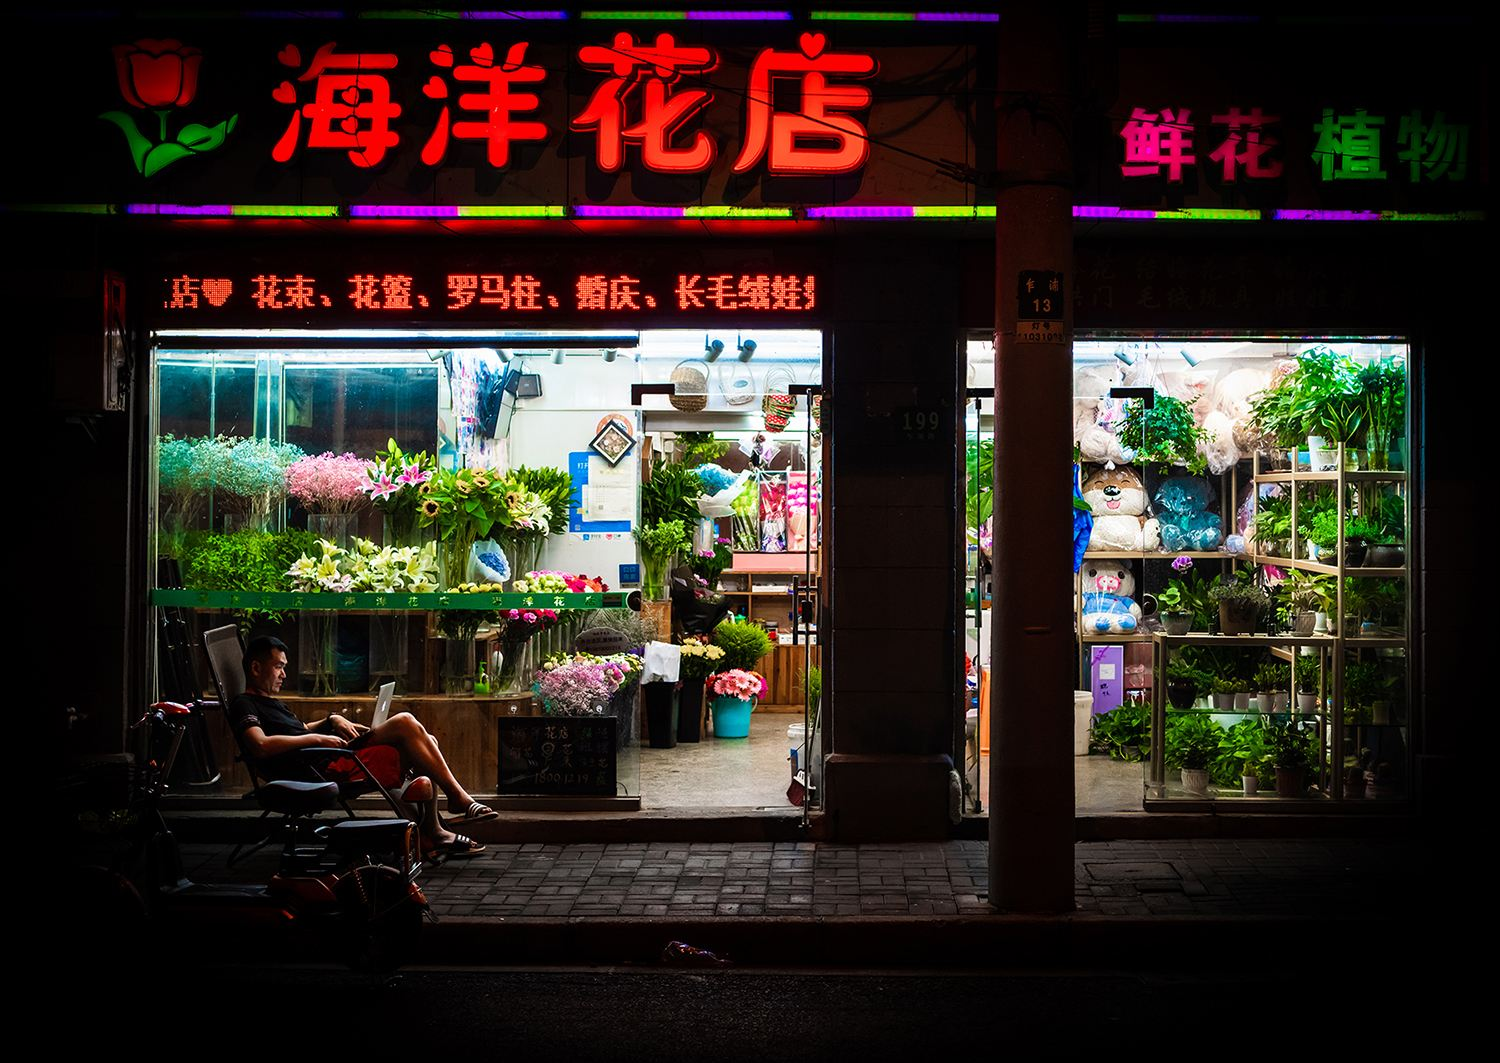 Nightshift Shanghai Reportage Art by Florian W. Mueller, photography, nighttime